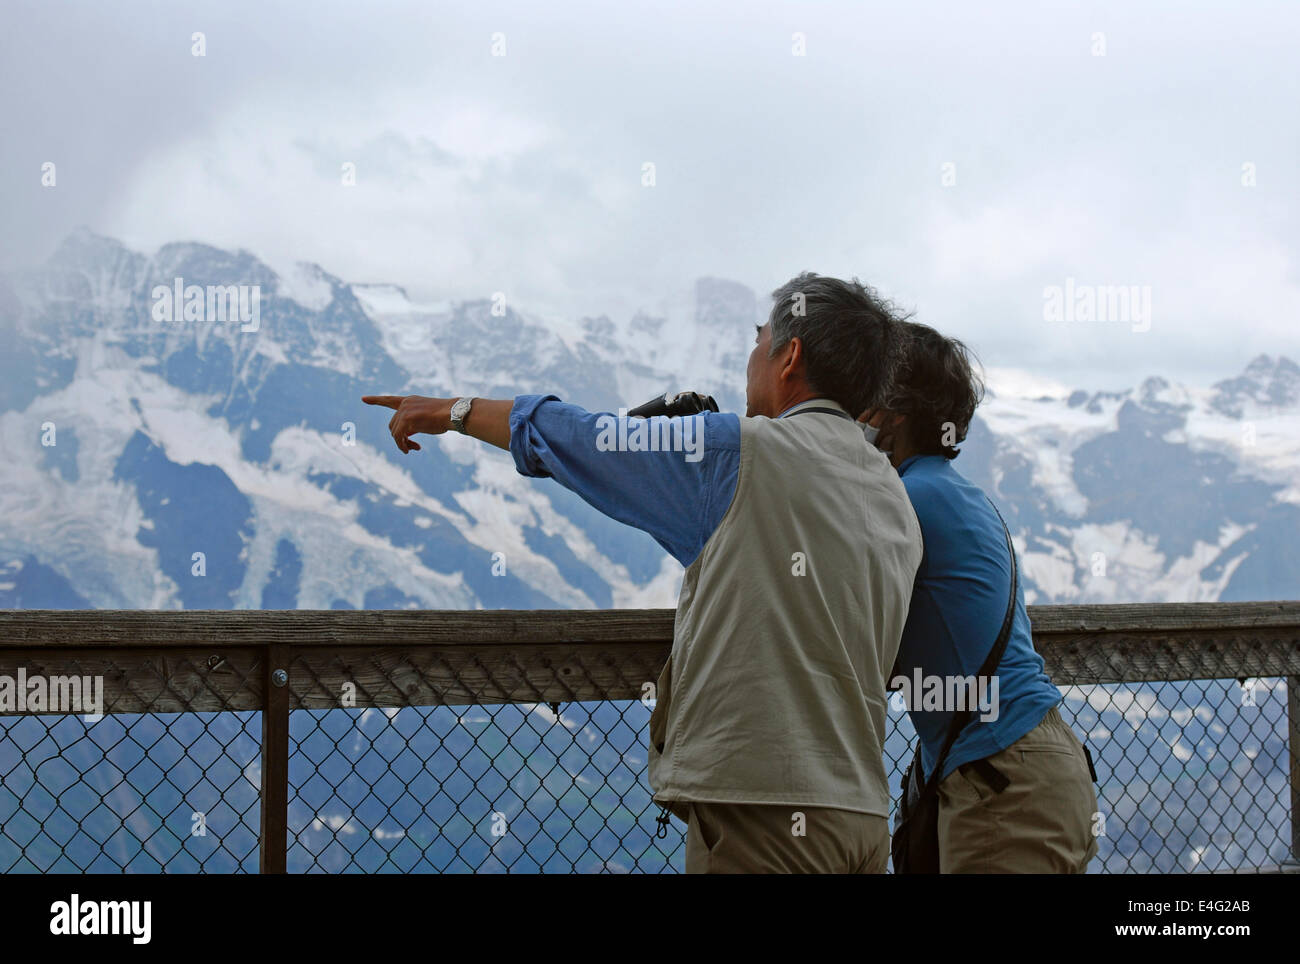 Tourists at Schilthorn viewpoint looking out onto Jungfrau, Oberland Bernese, Switzerland - Stock Image